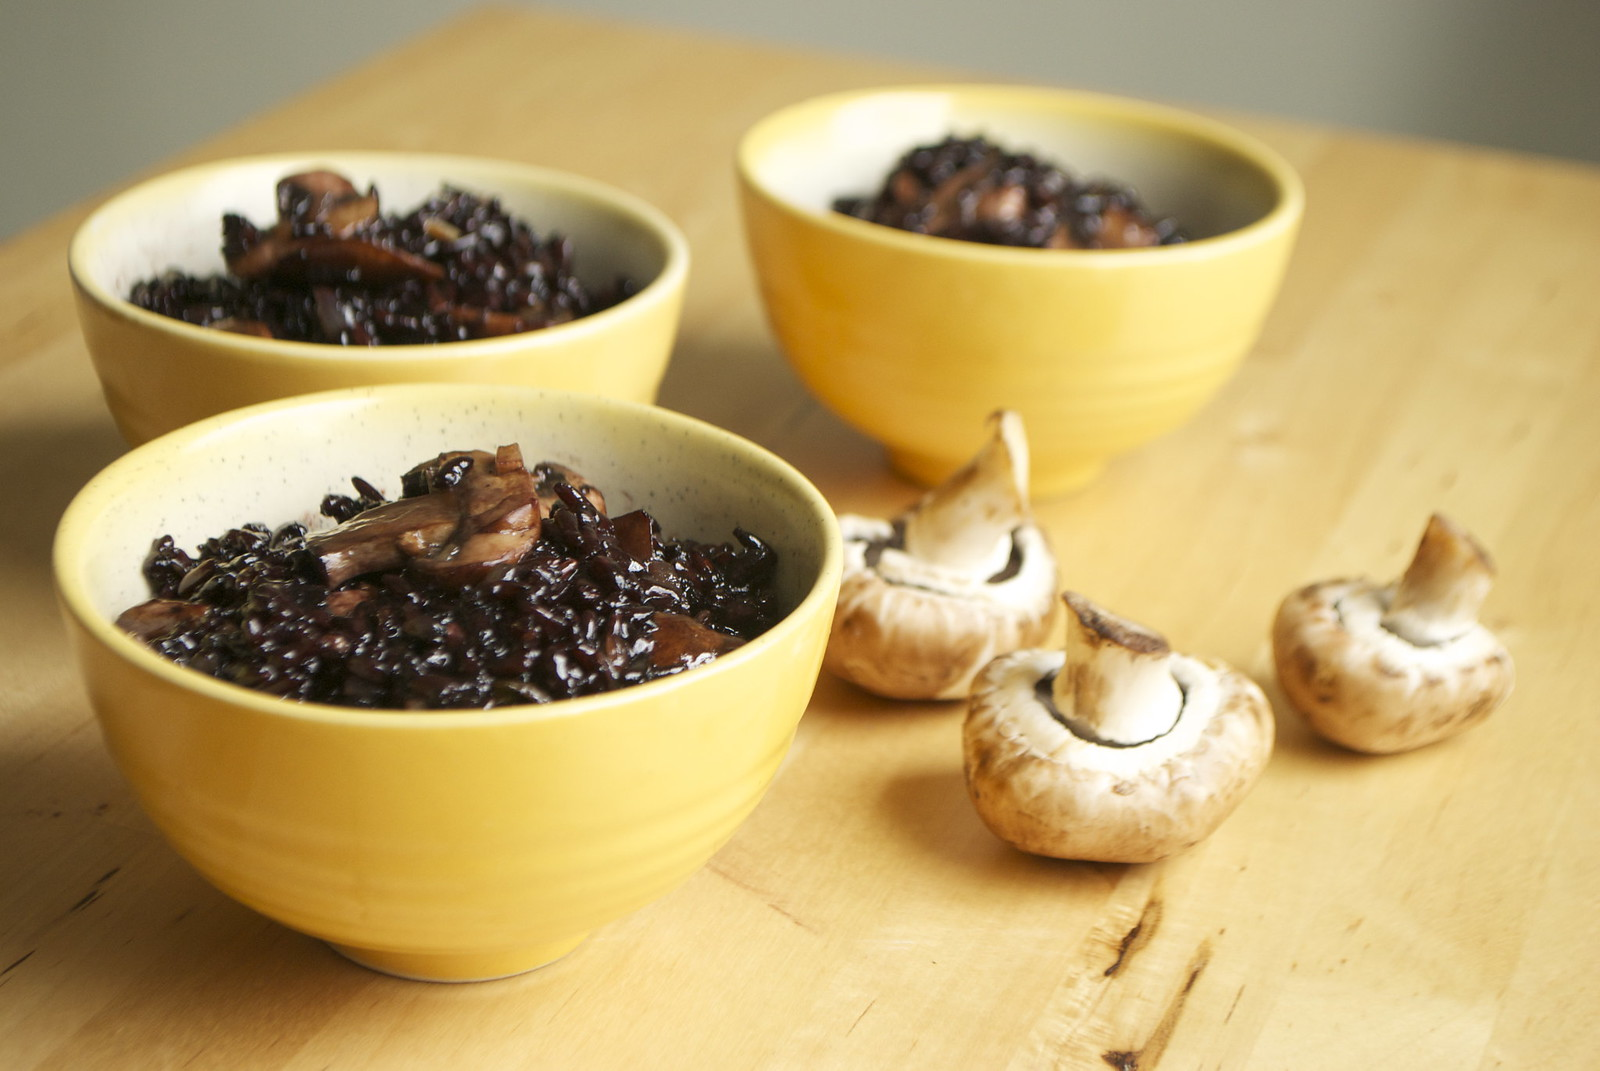 mushroom fried black rice, in bowls